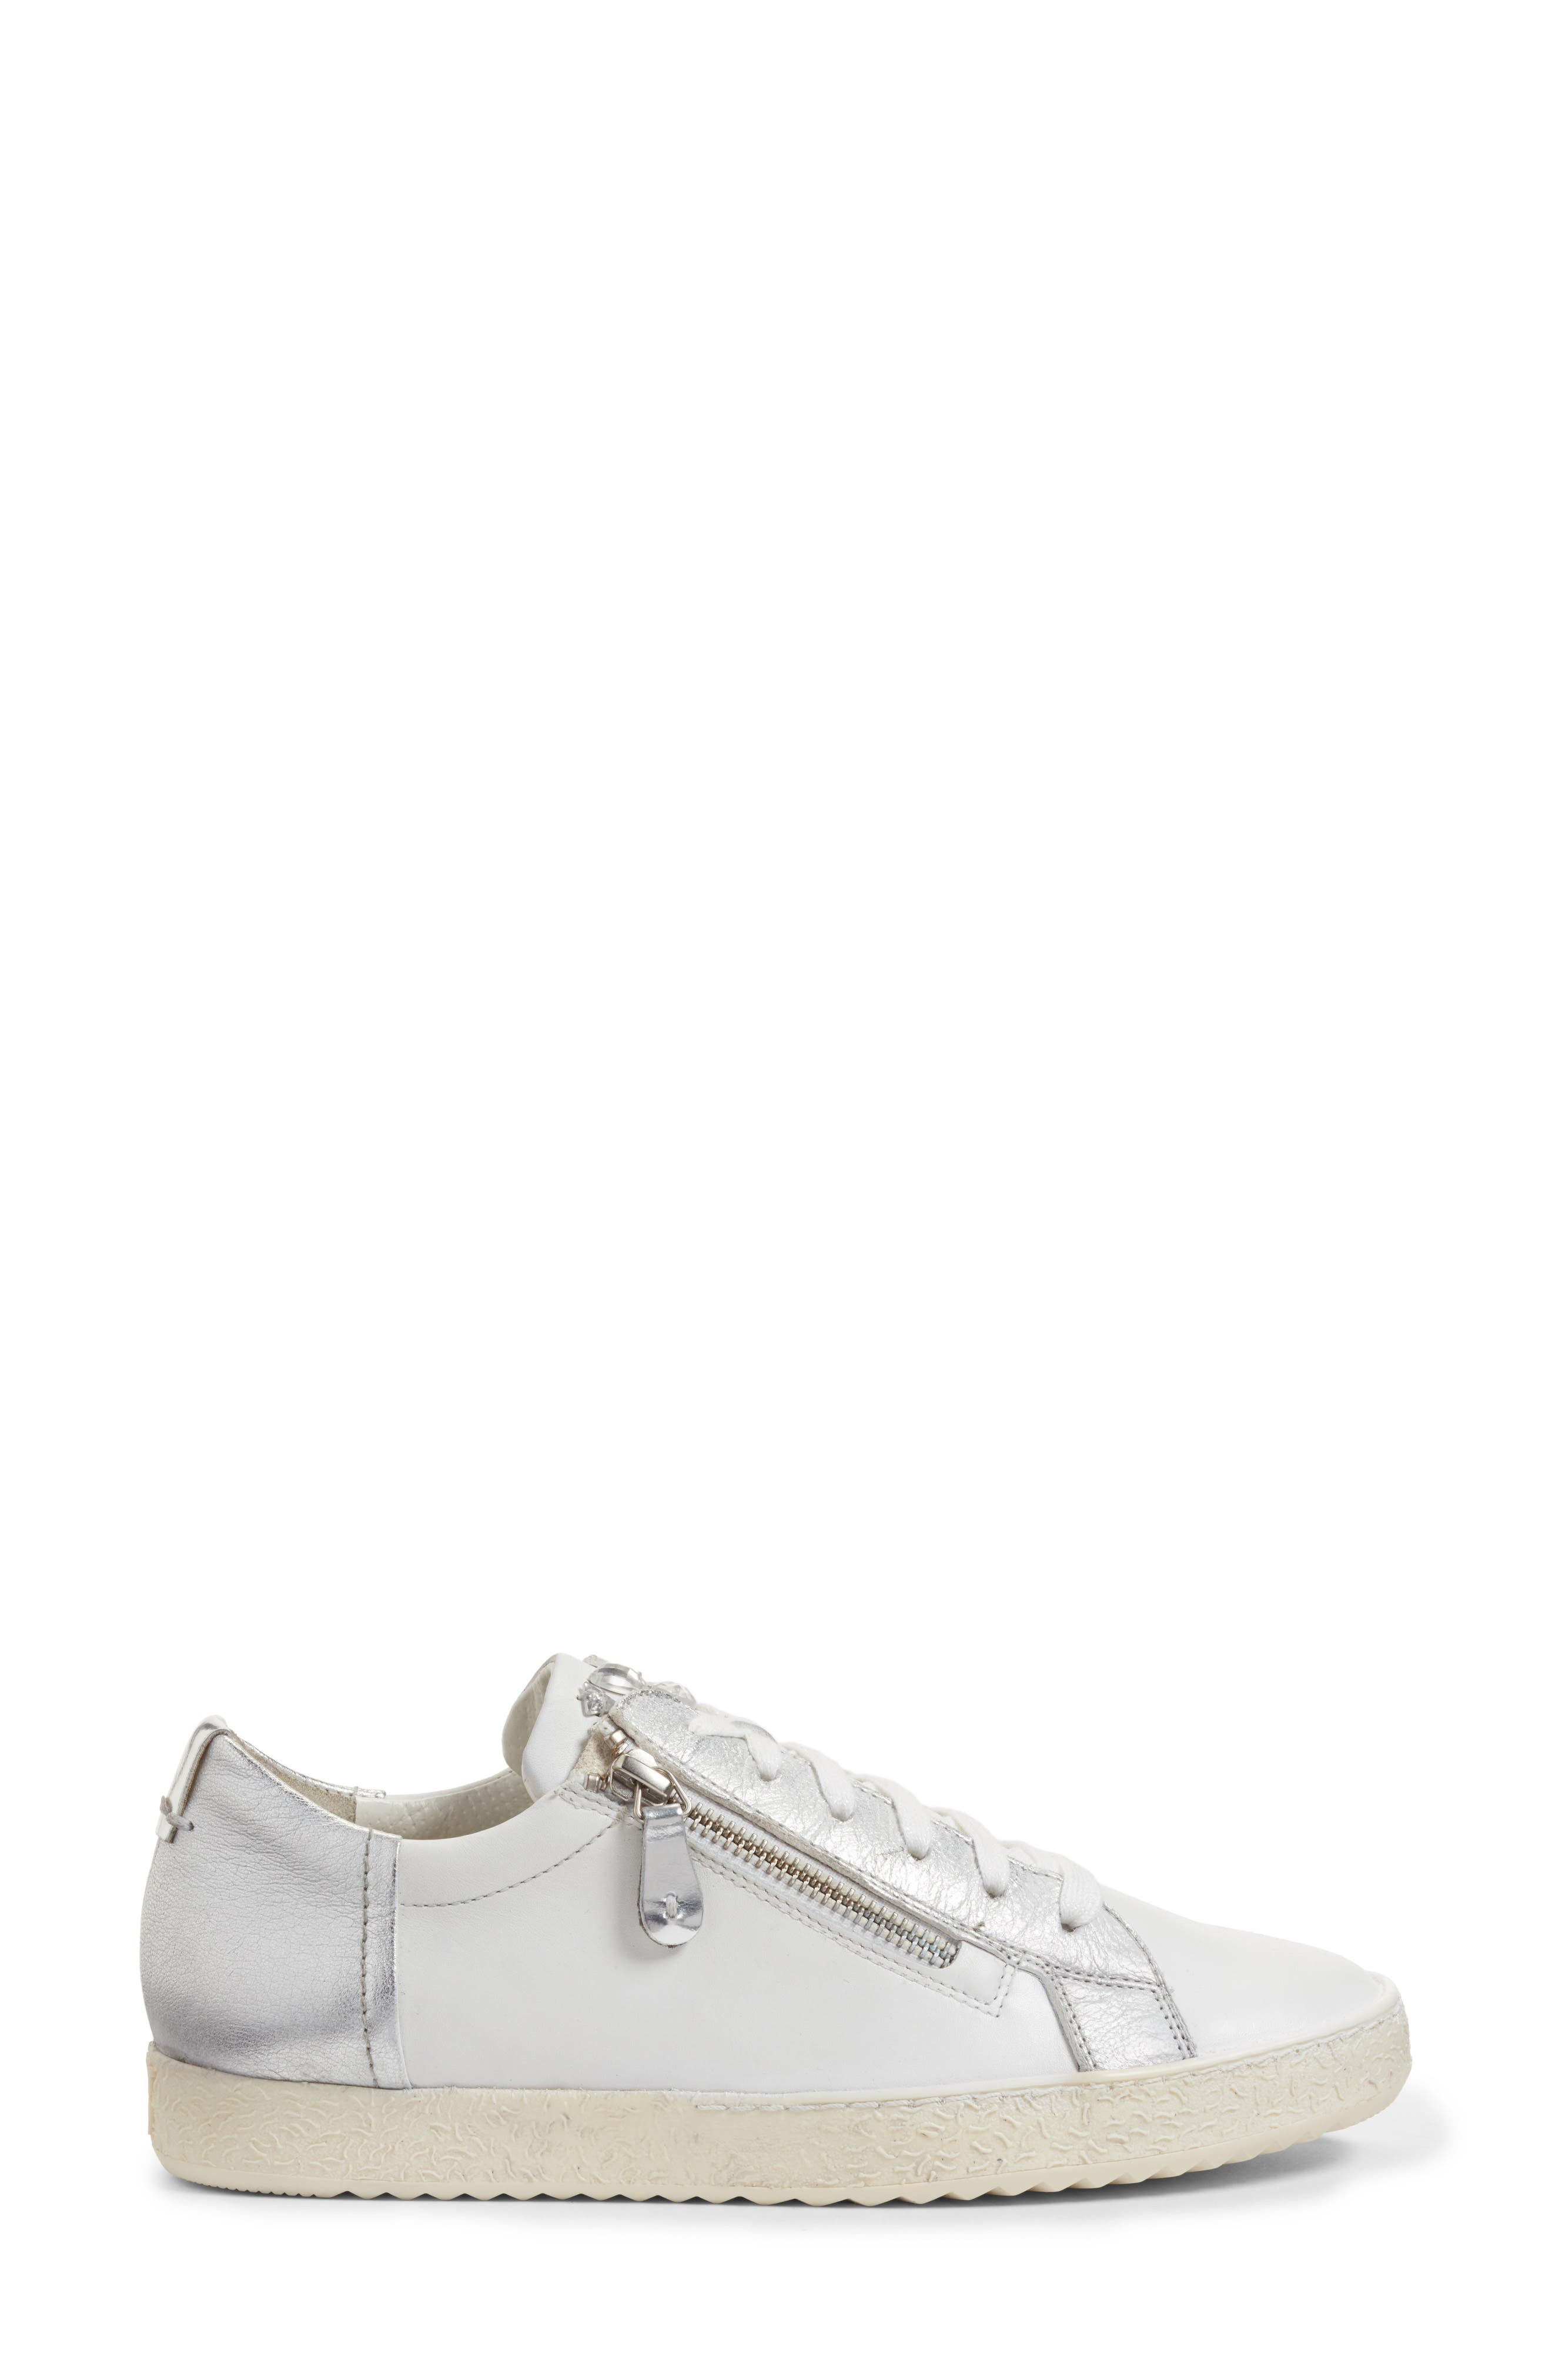 Minnie Sneaker,                             Alternate thumbnail 4, color,                             White/ Silver Leather